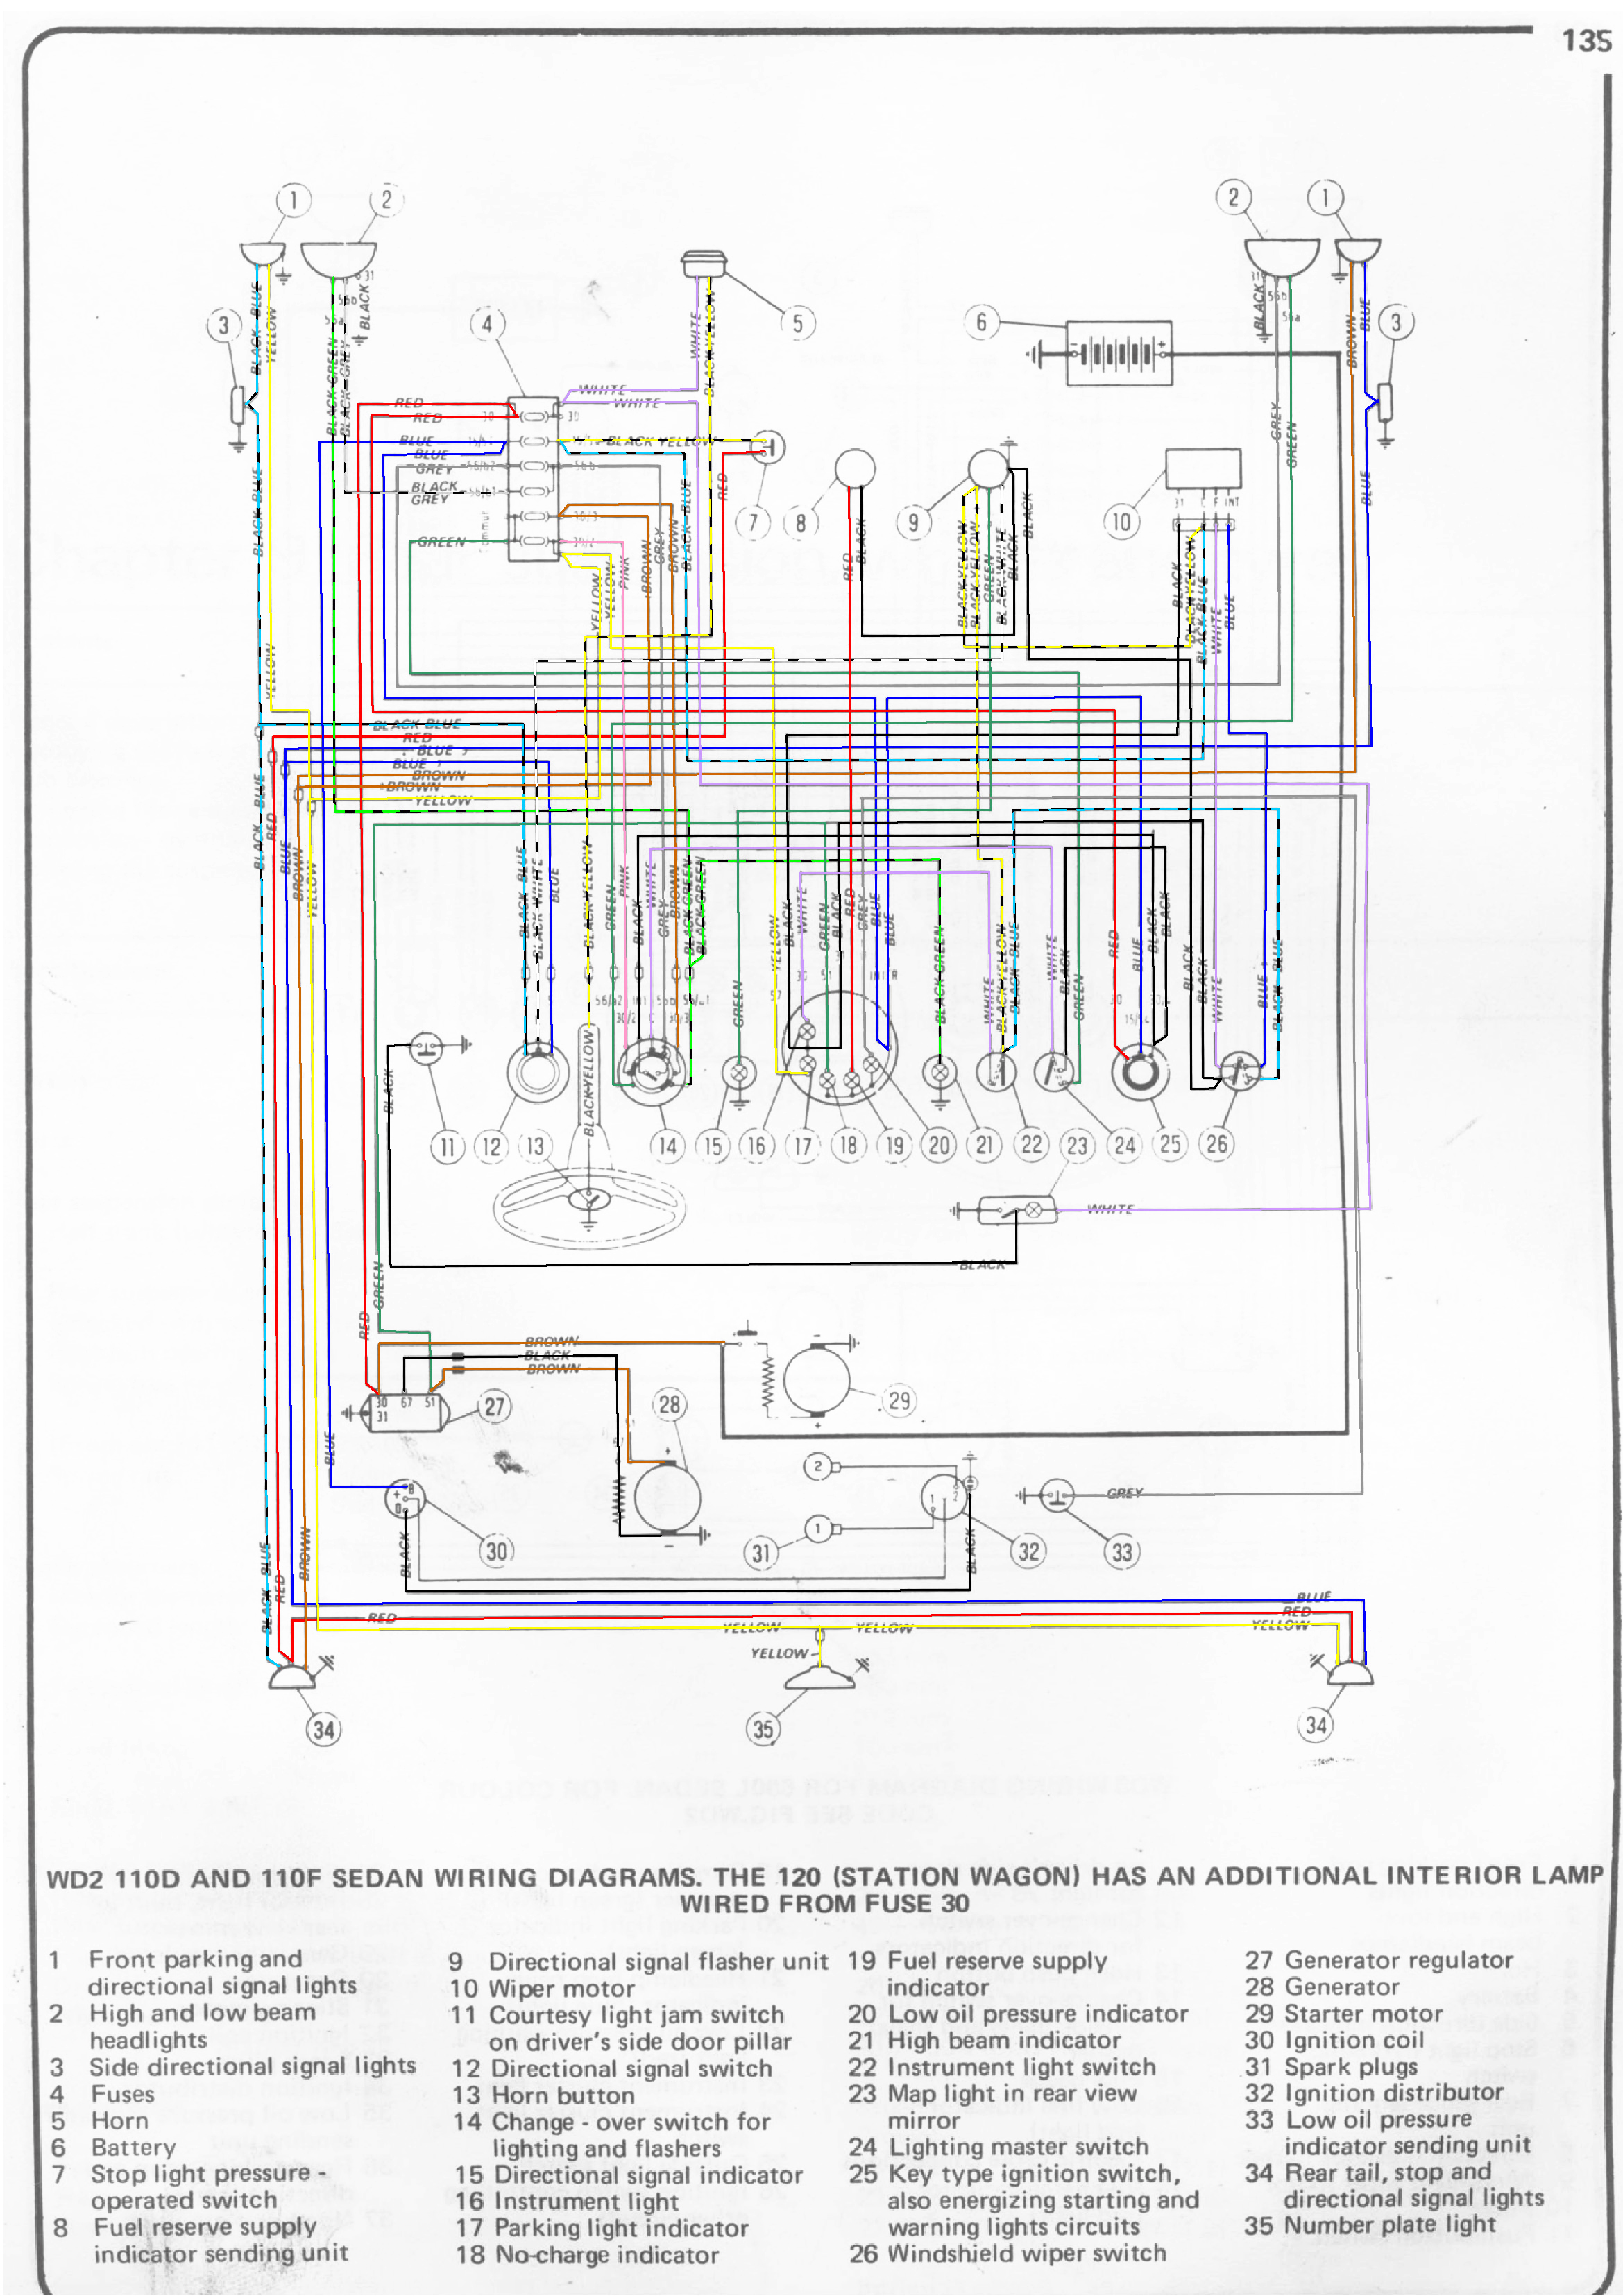 Fiat+500+Wiring+Diagram?t\=1508407624 fiat cinquecento fuse box diagram wiring diagram simonand  at gsmx.co